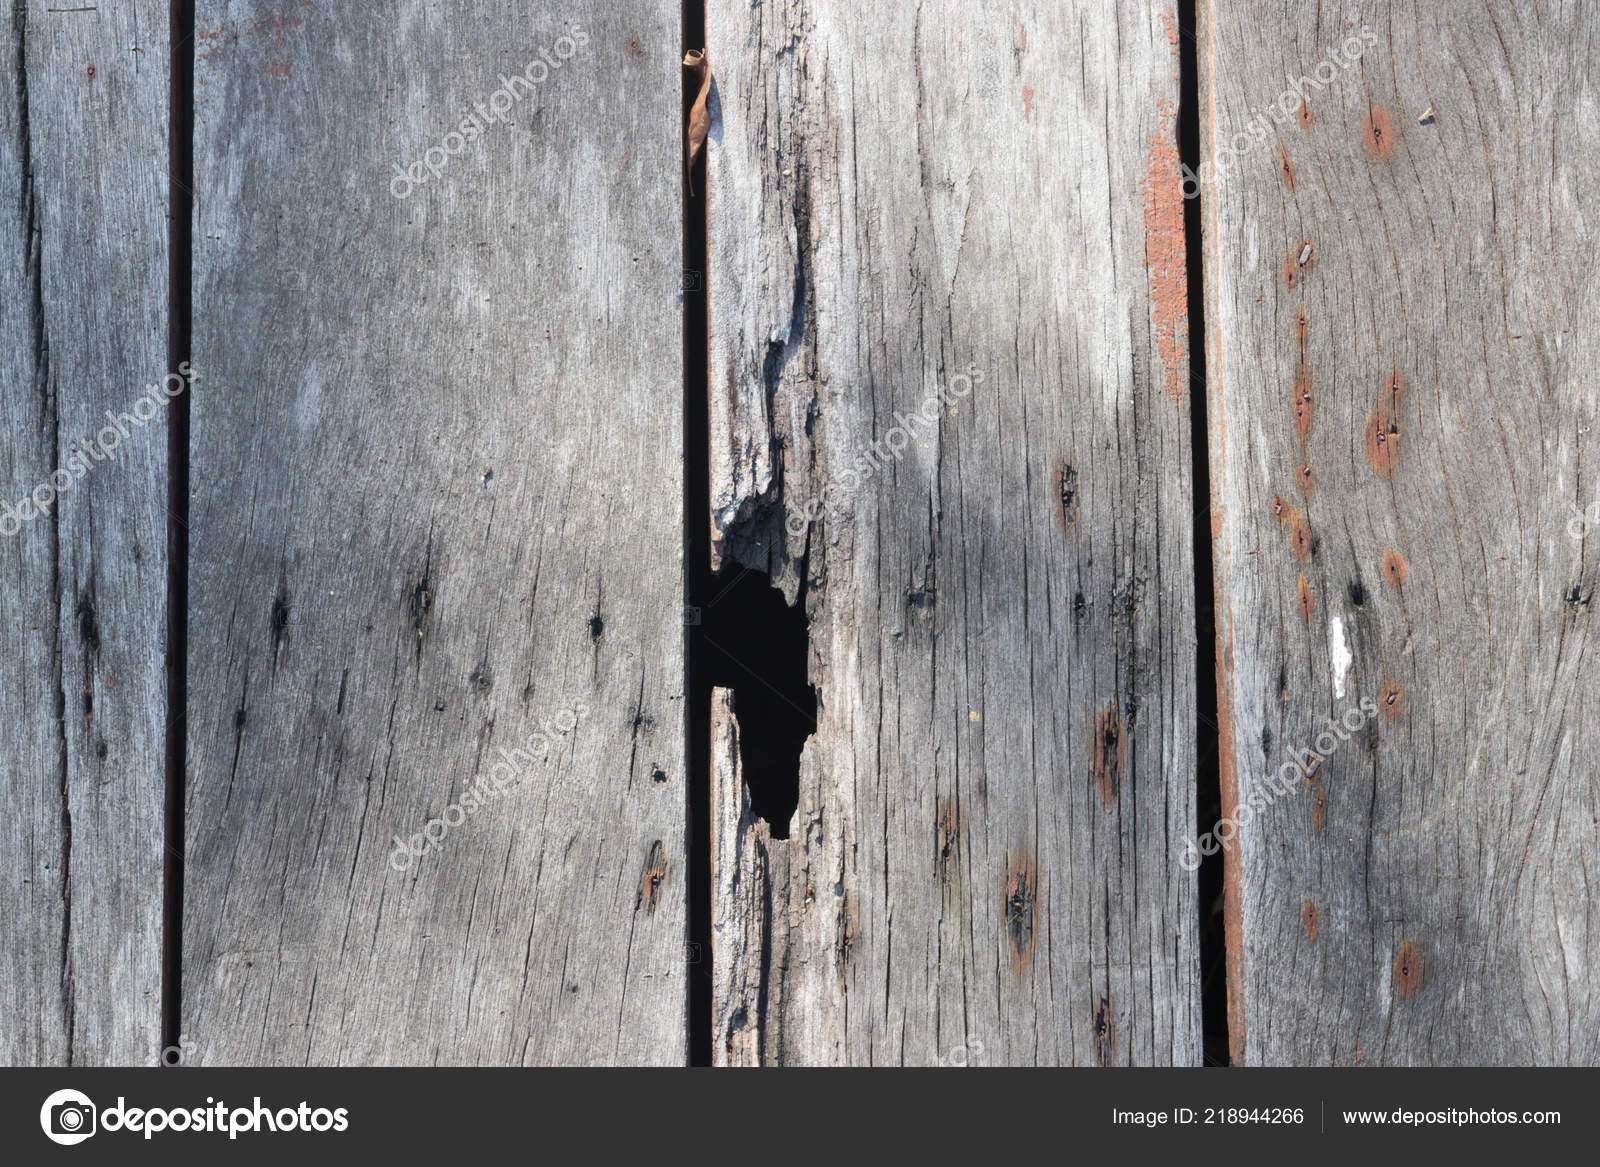 Wooden Floor Made Old Wooden Boards Beautiful Patterns Rust Metal